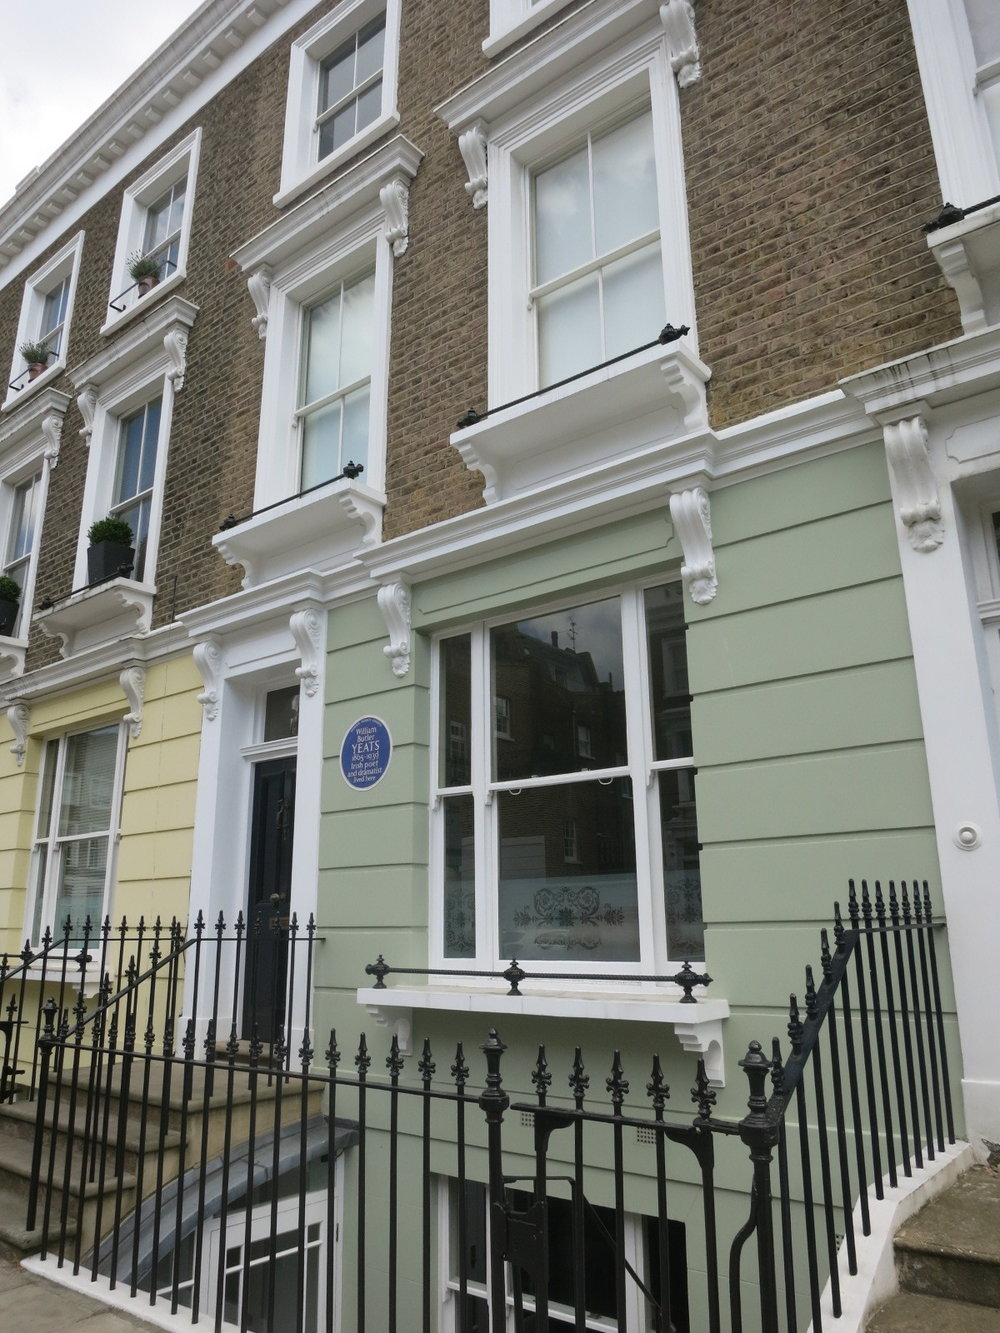 Plath's last home, the upstairs duplex at 23 Fitzroy Road, London